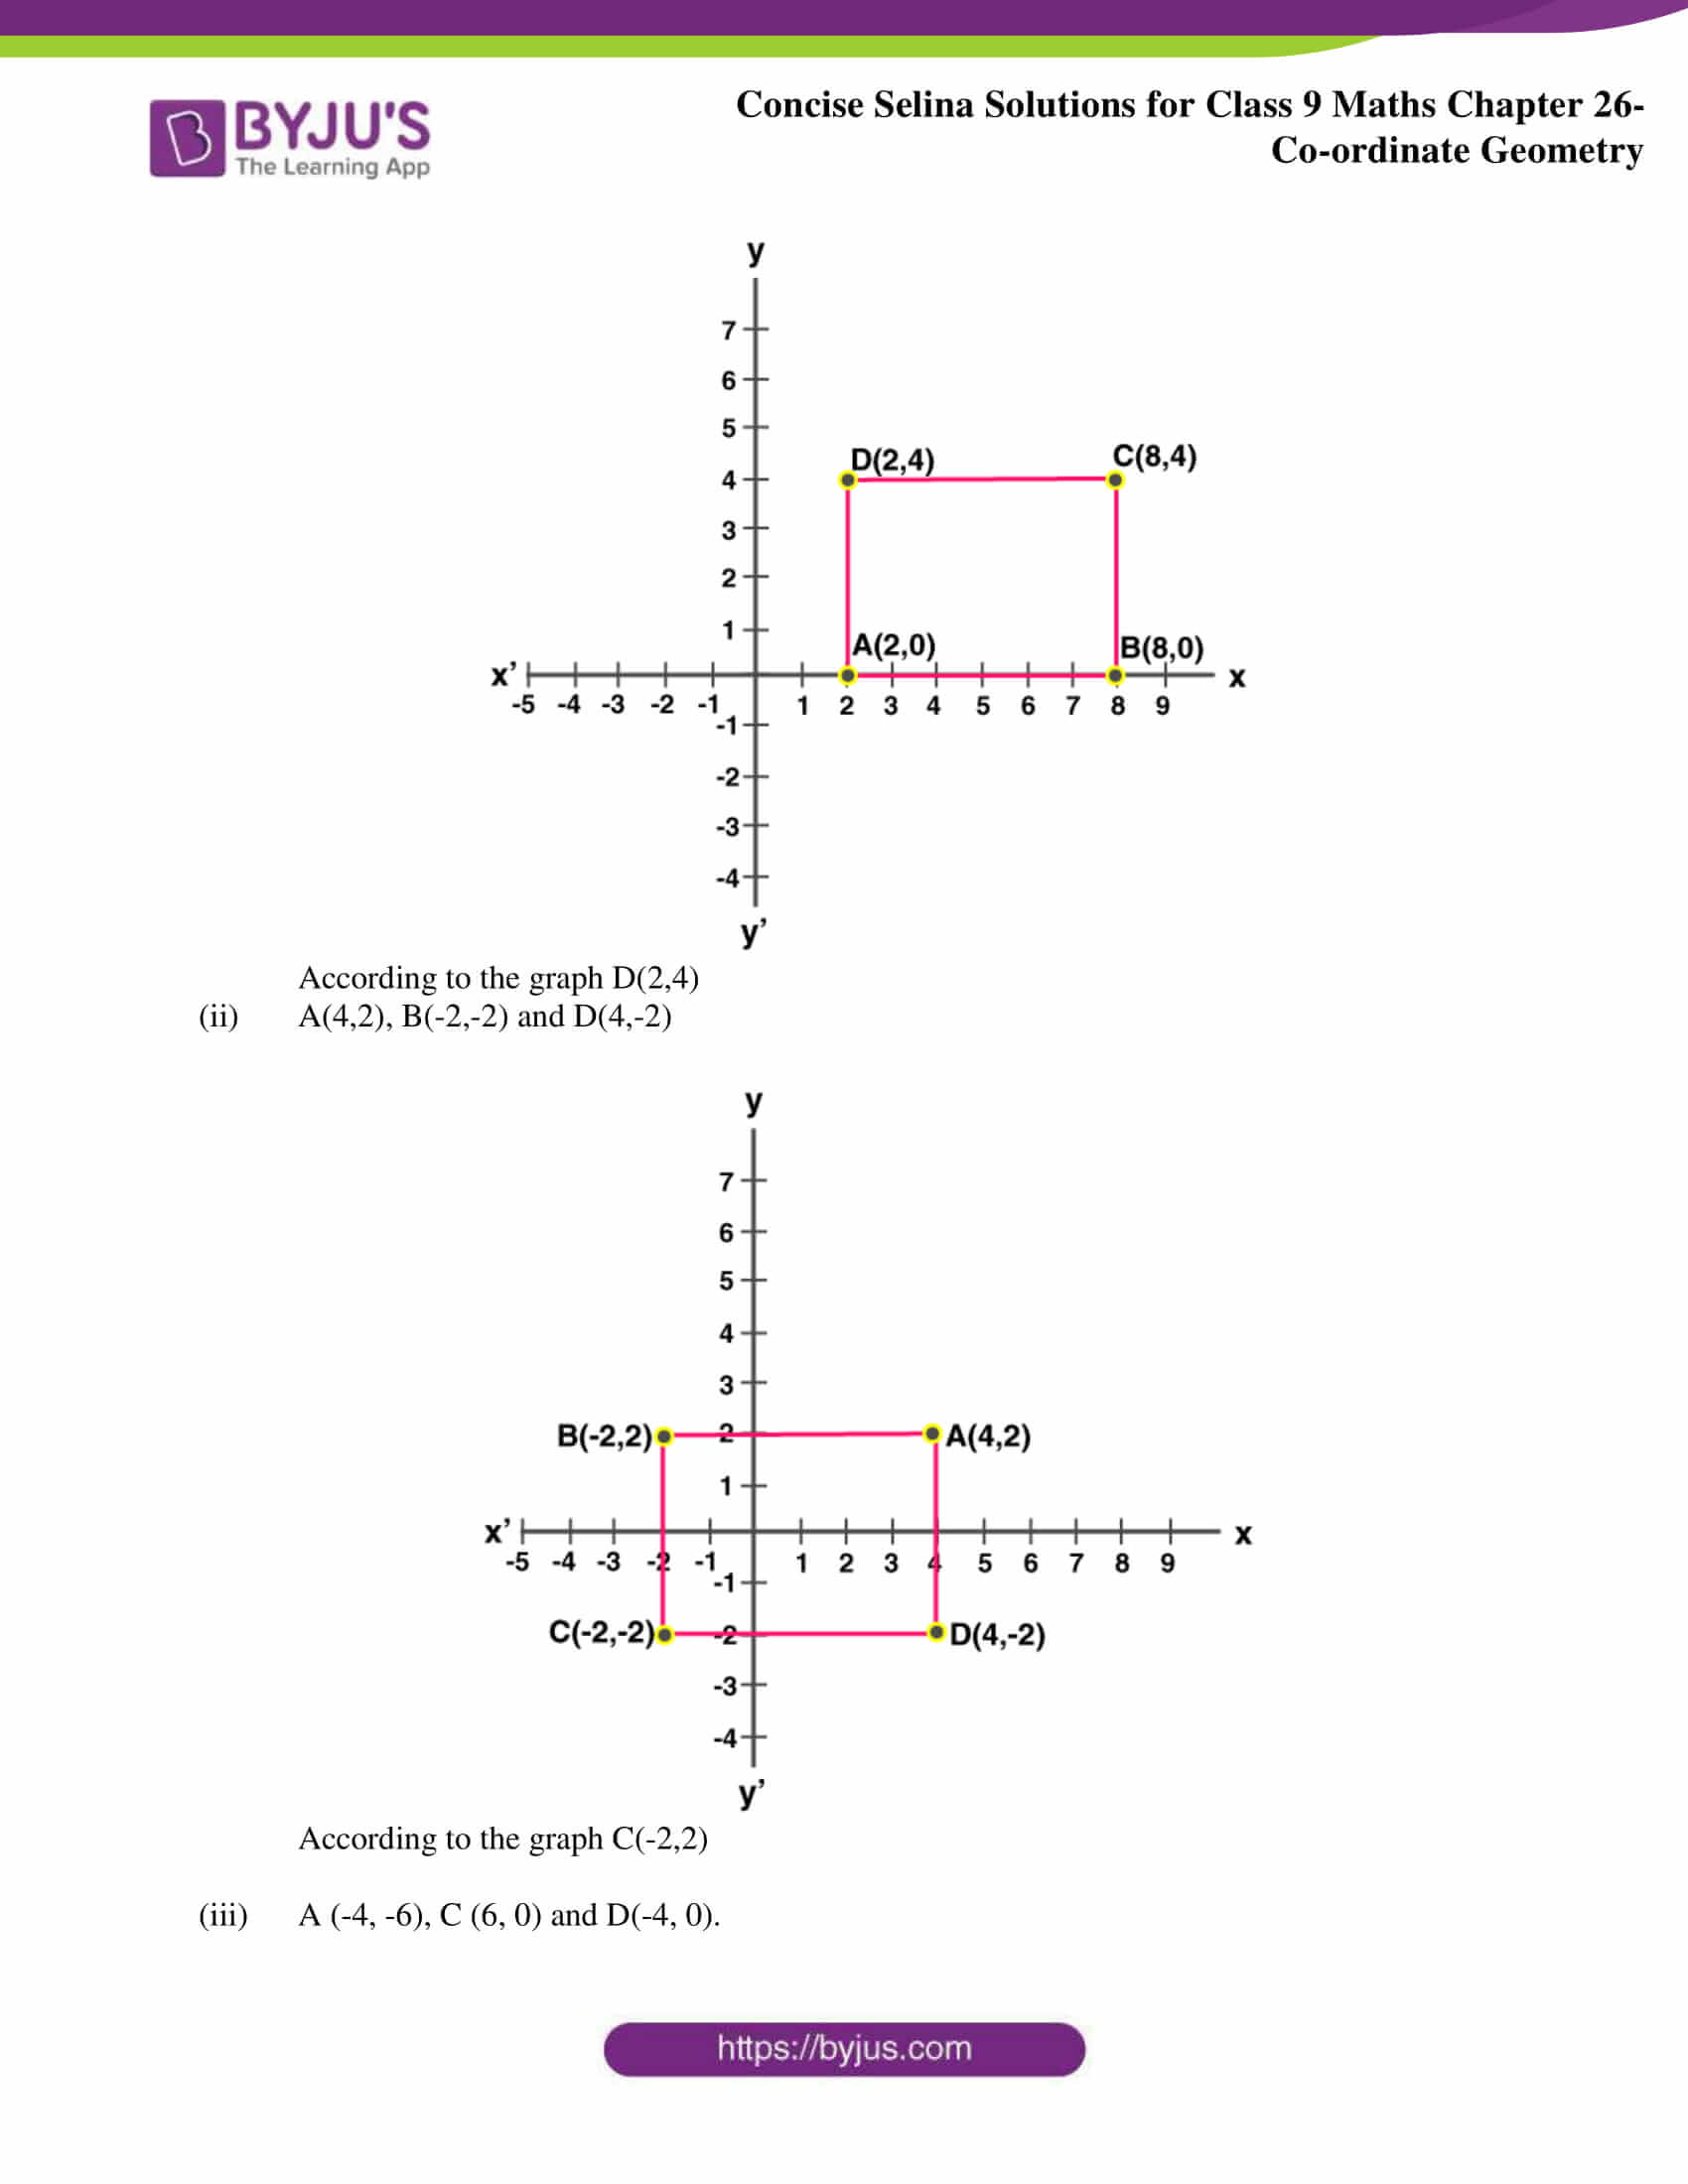 Selina Solutions for Class 9 Maths Chapter 26 part 08